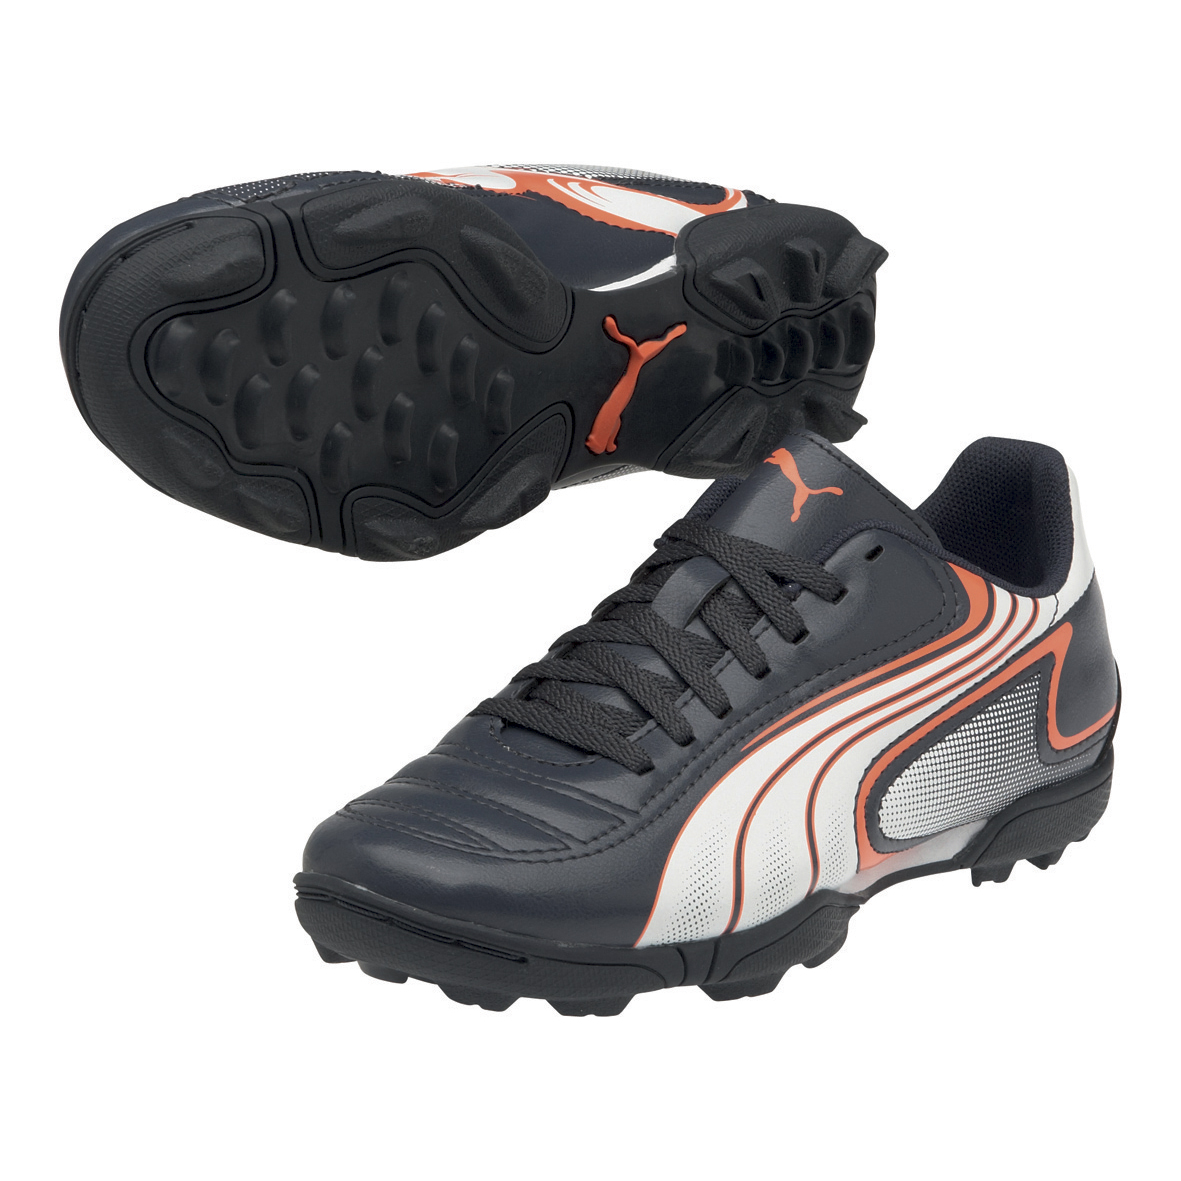 Puma v6.11 Astro Turf Trainers - Team Charcoal/White/Fluo Peach